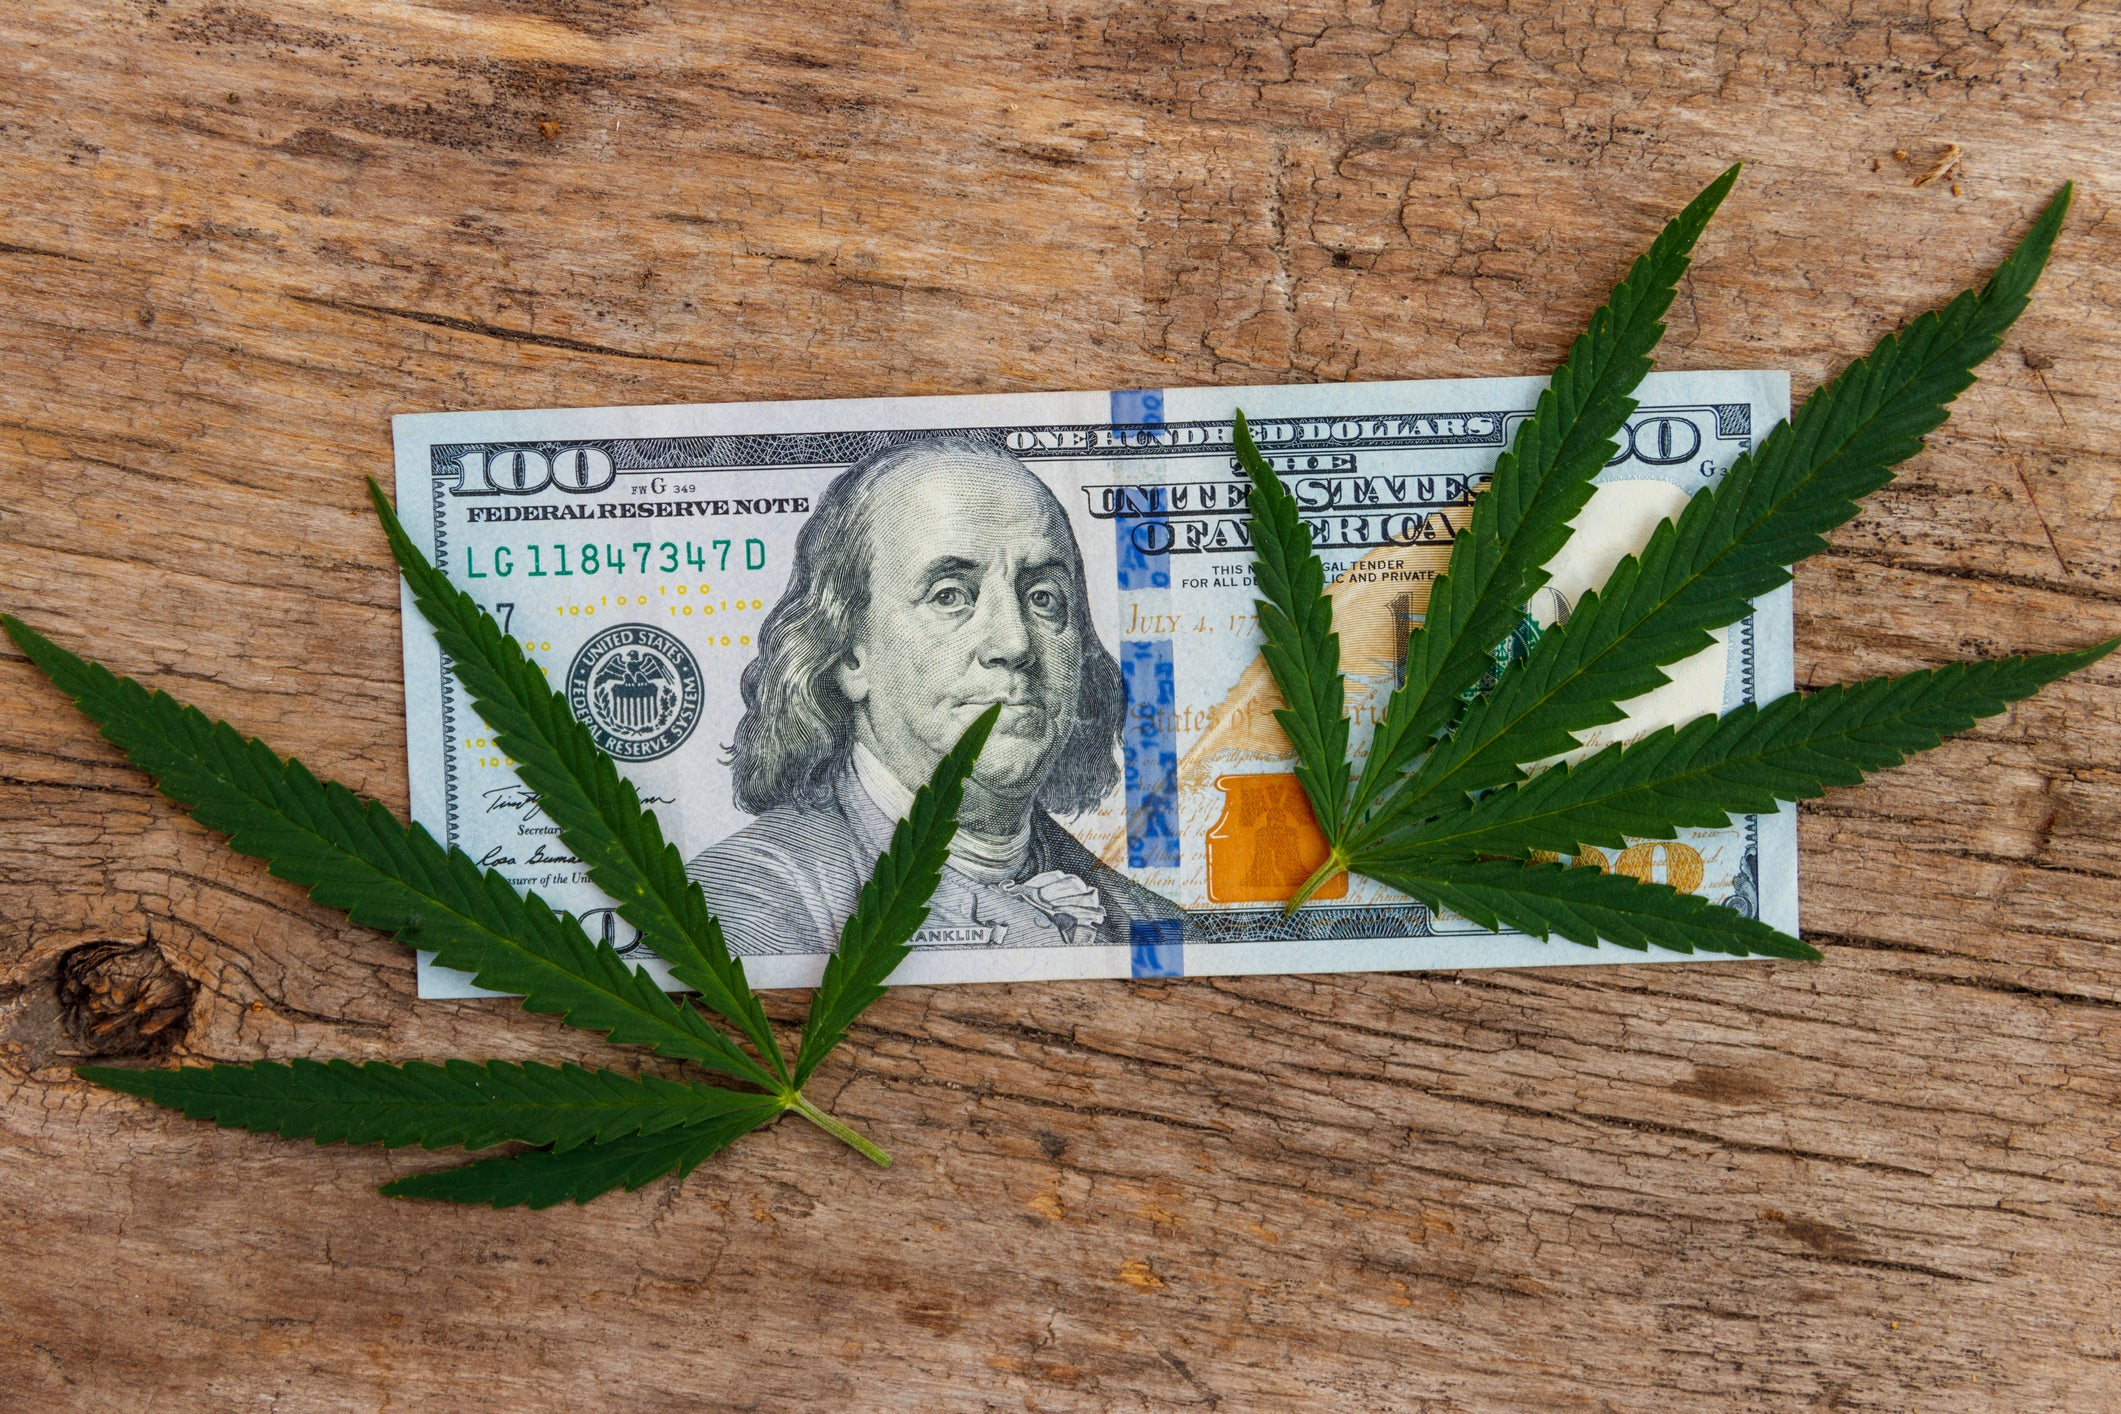 Forget Aurora Cannabis: Buy These 2 Pot Stocks Instead